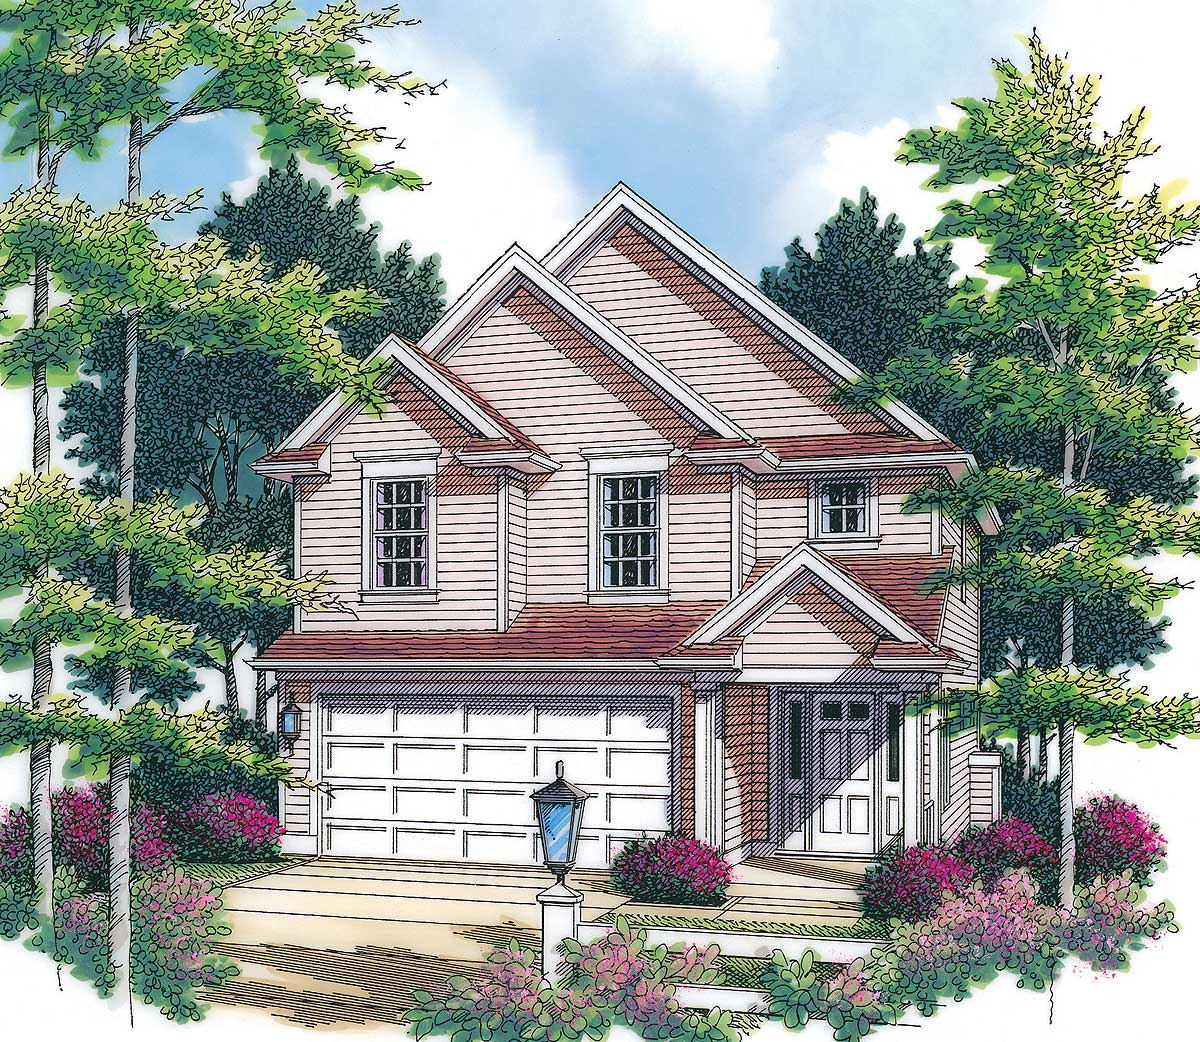 Country cottage for narrow lot 6904am architectural for Cottage house plans for narrow lots